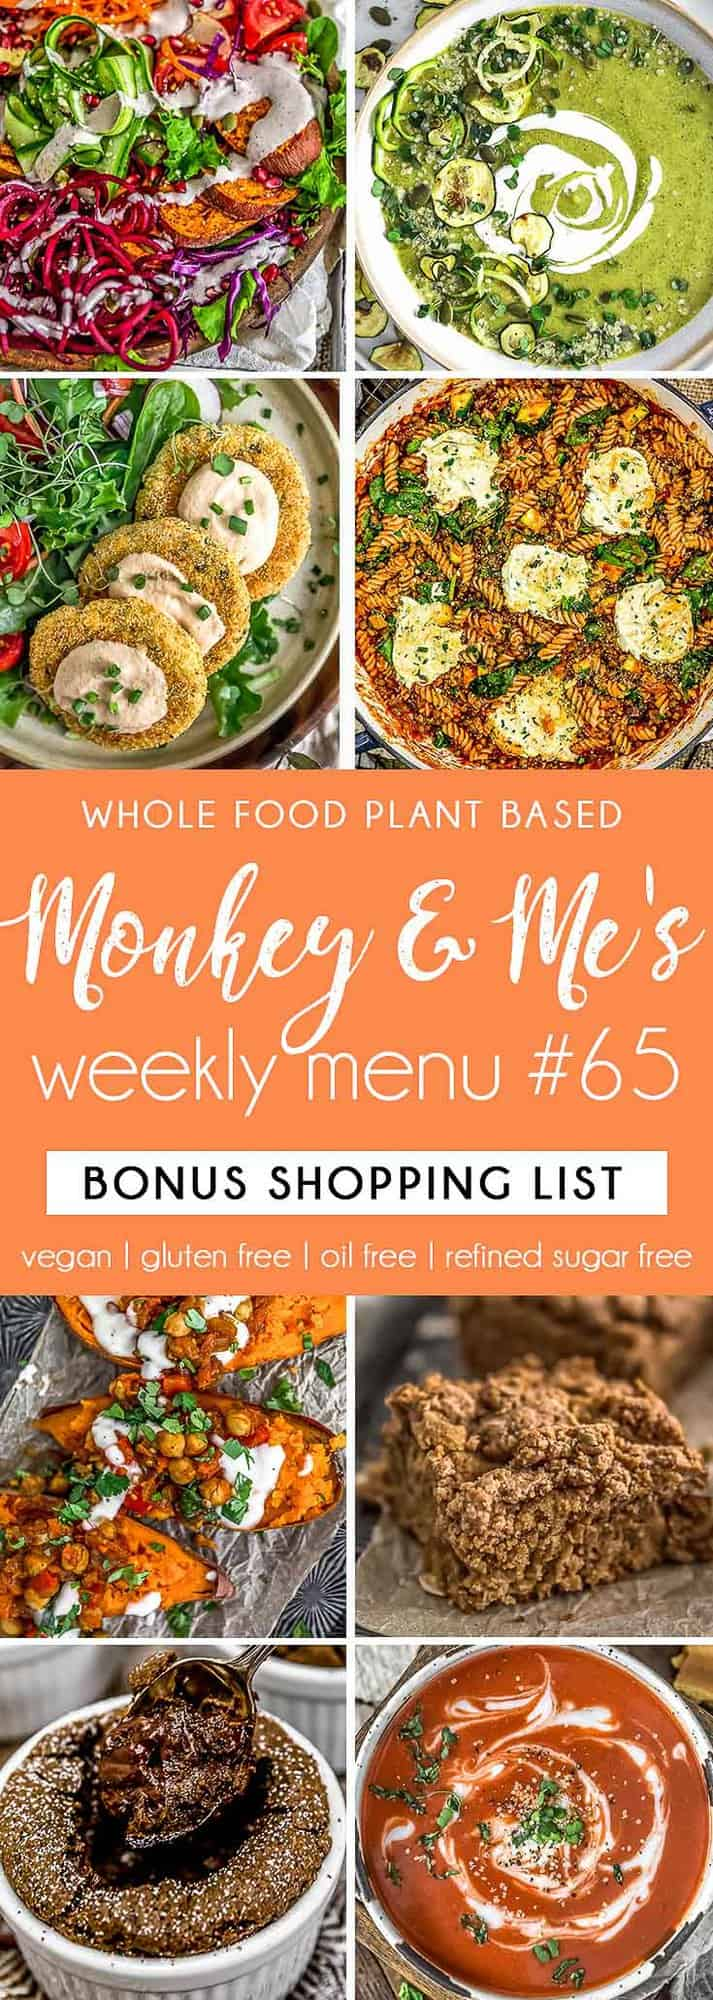 Monkey and Me's Menu 65 featuring 8 recipes